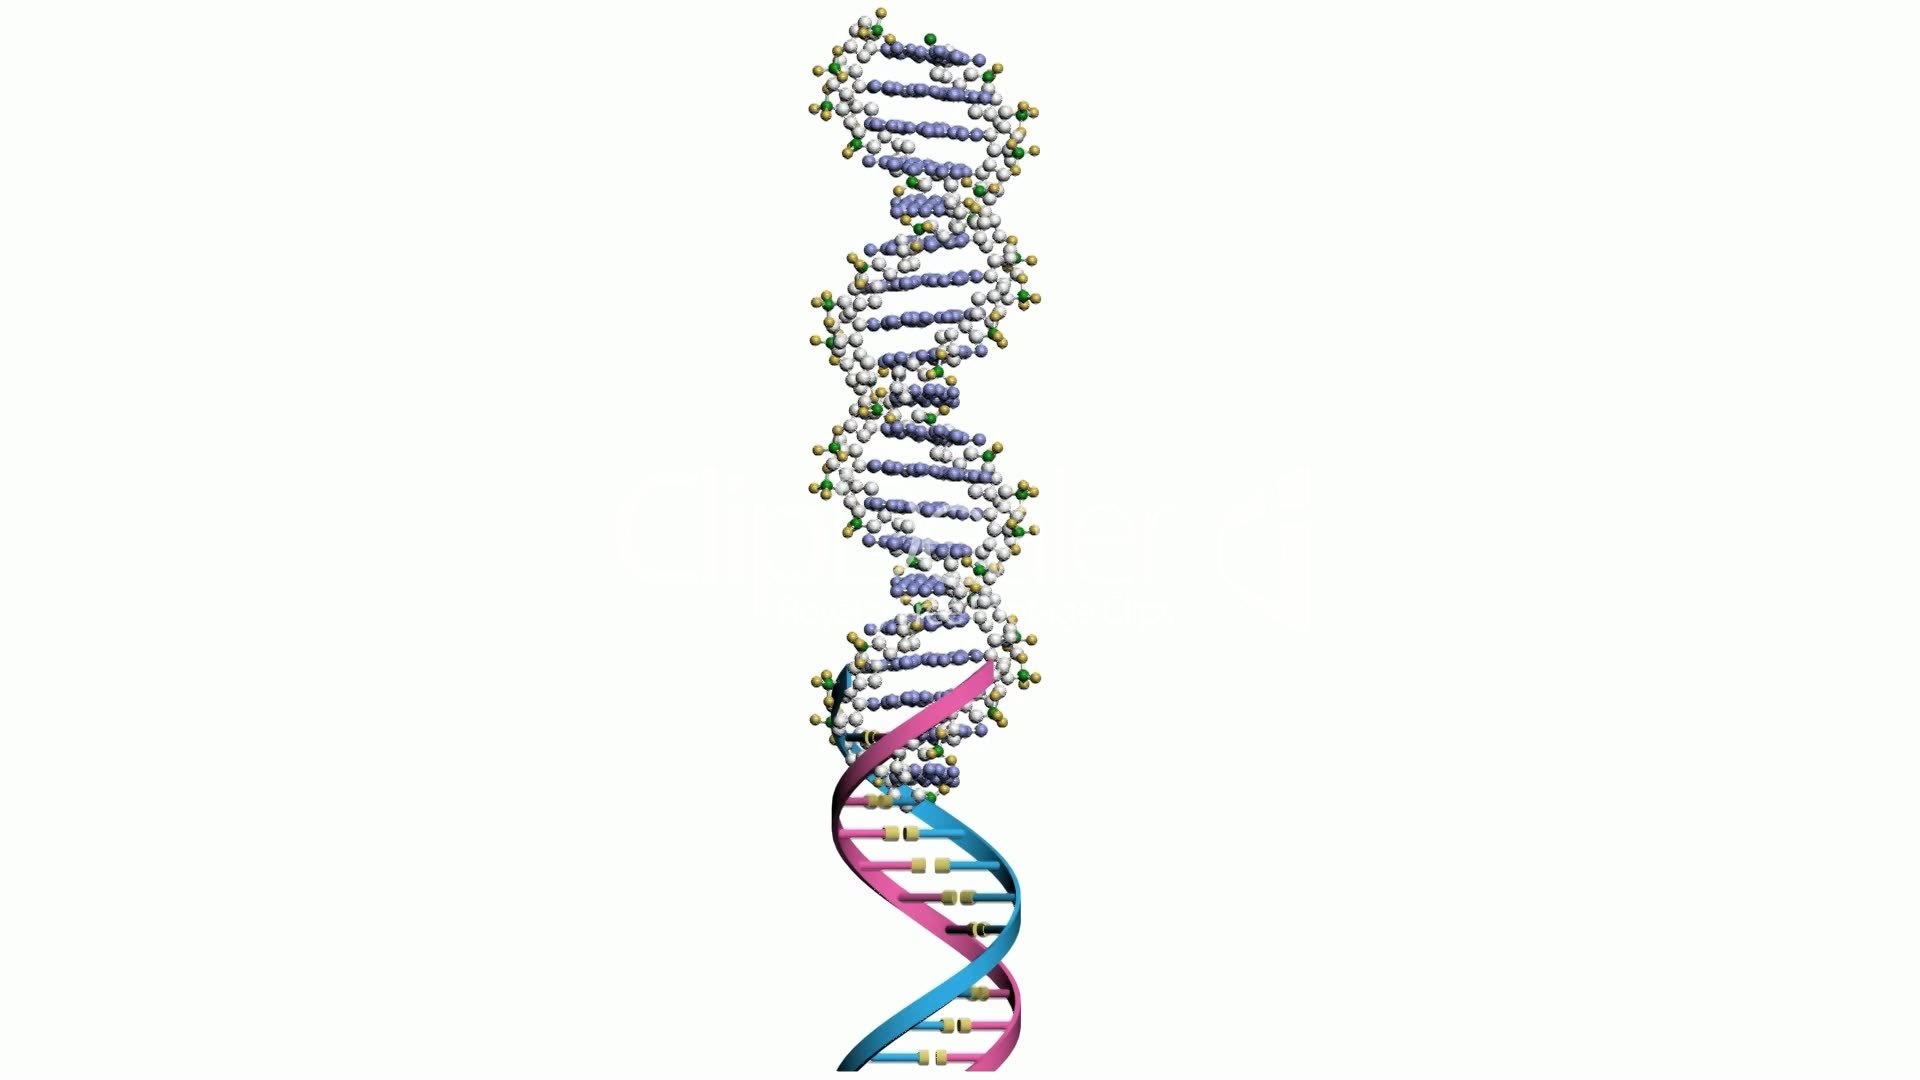 Rotation Of 3d Dna Medicine Biology Science Research Medical Helix Biotechnology Molecule